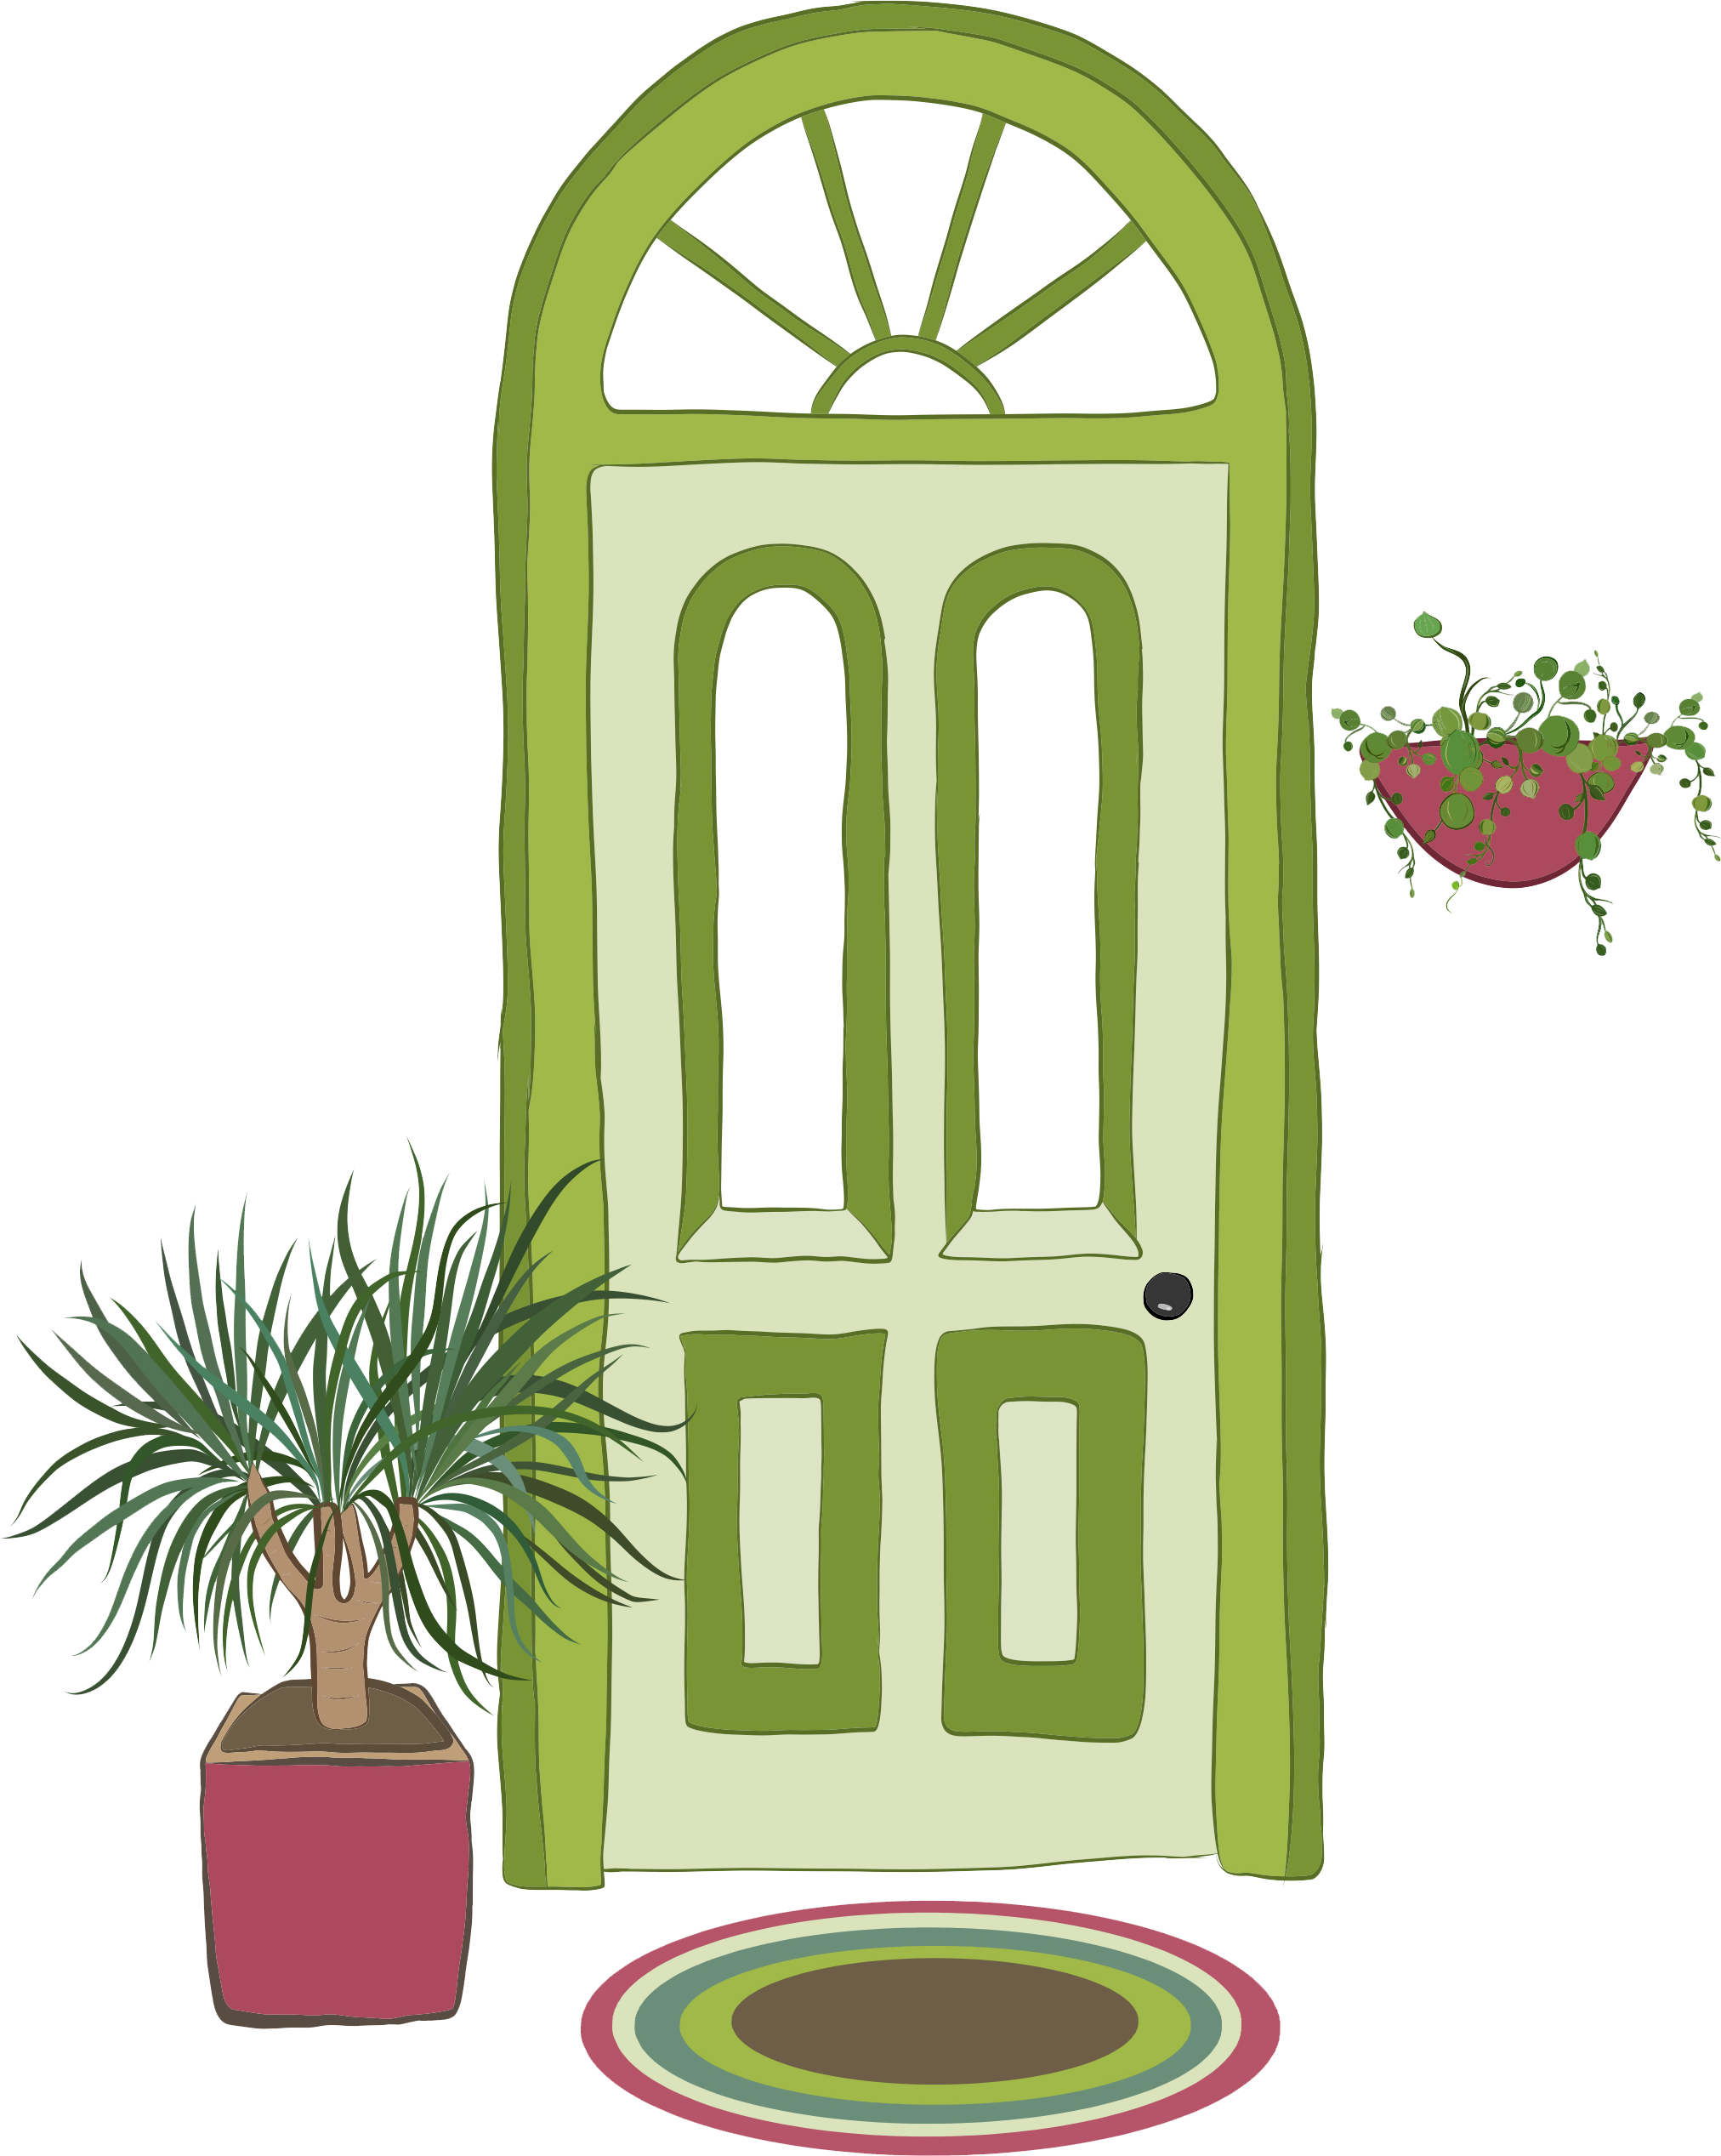 Illustration of green front door with welcome mat and plants